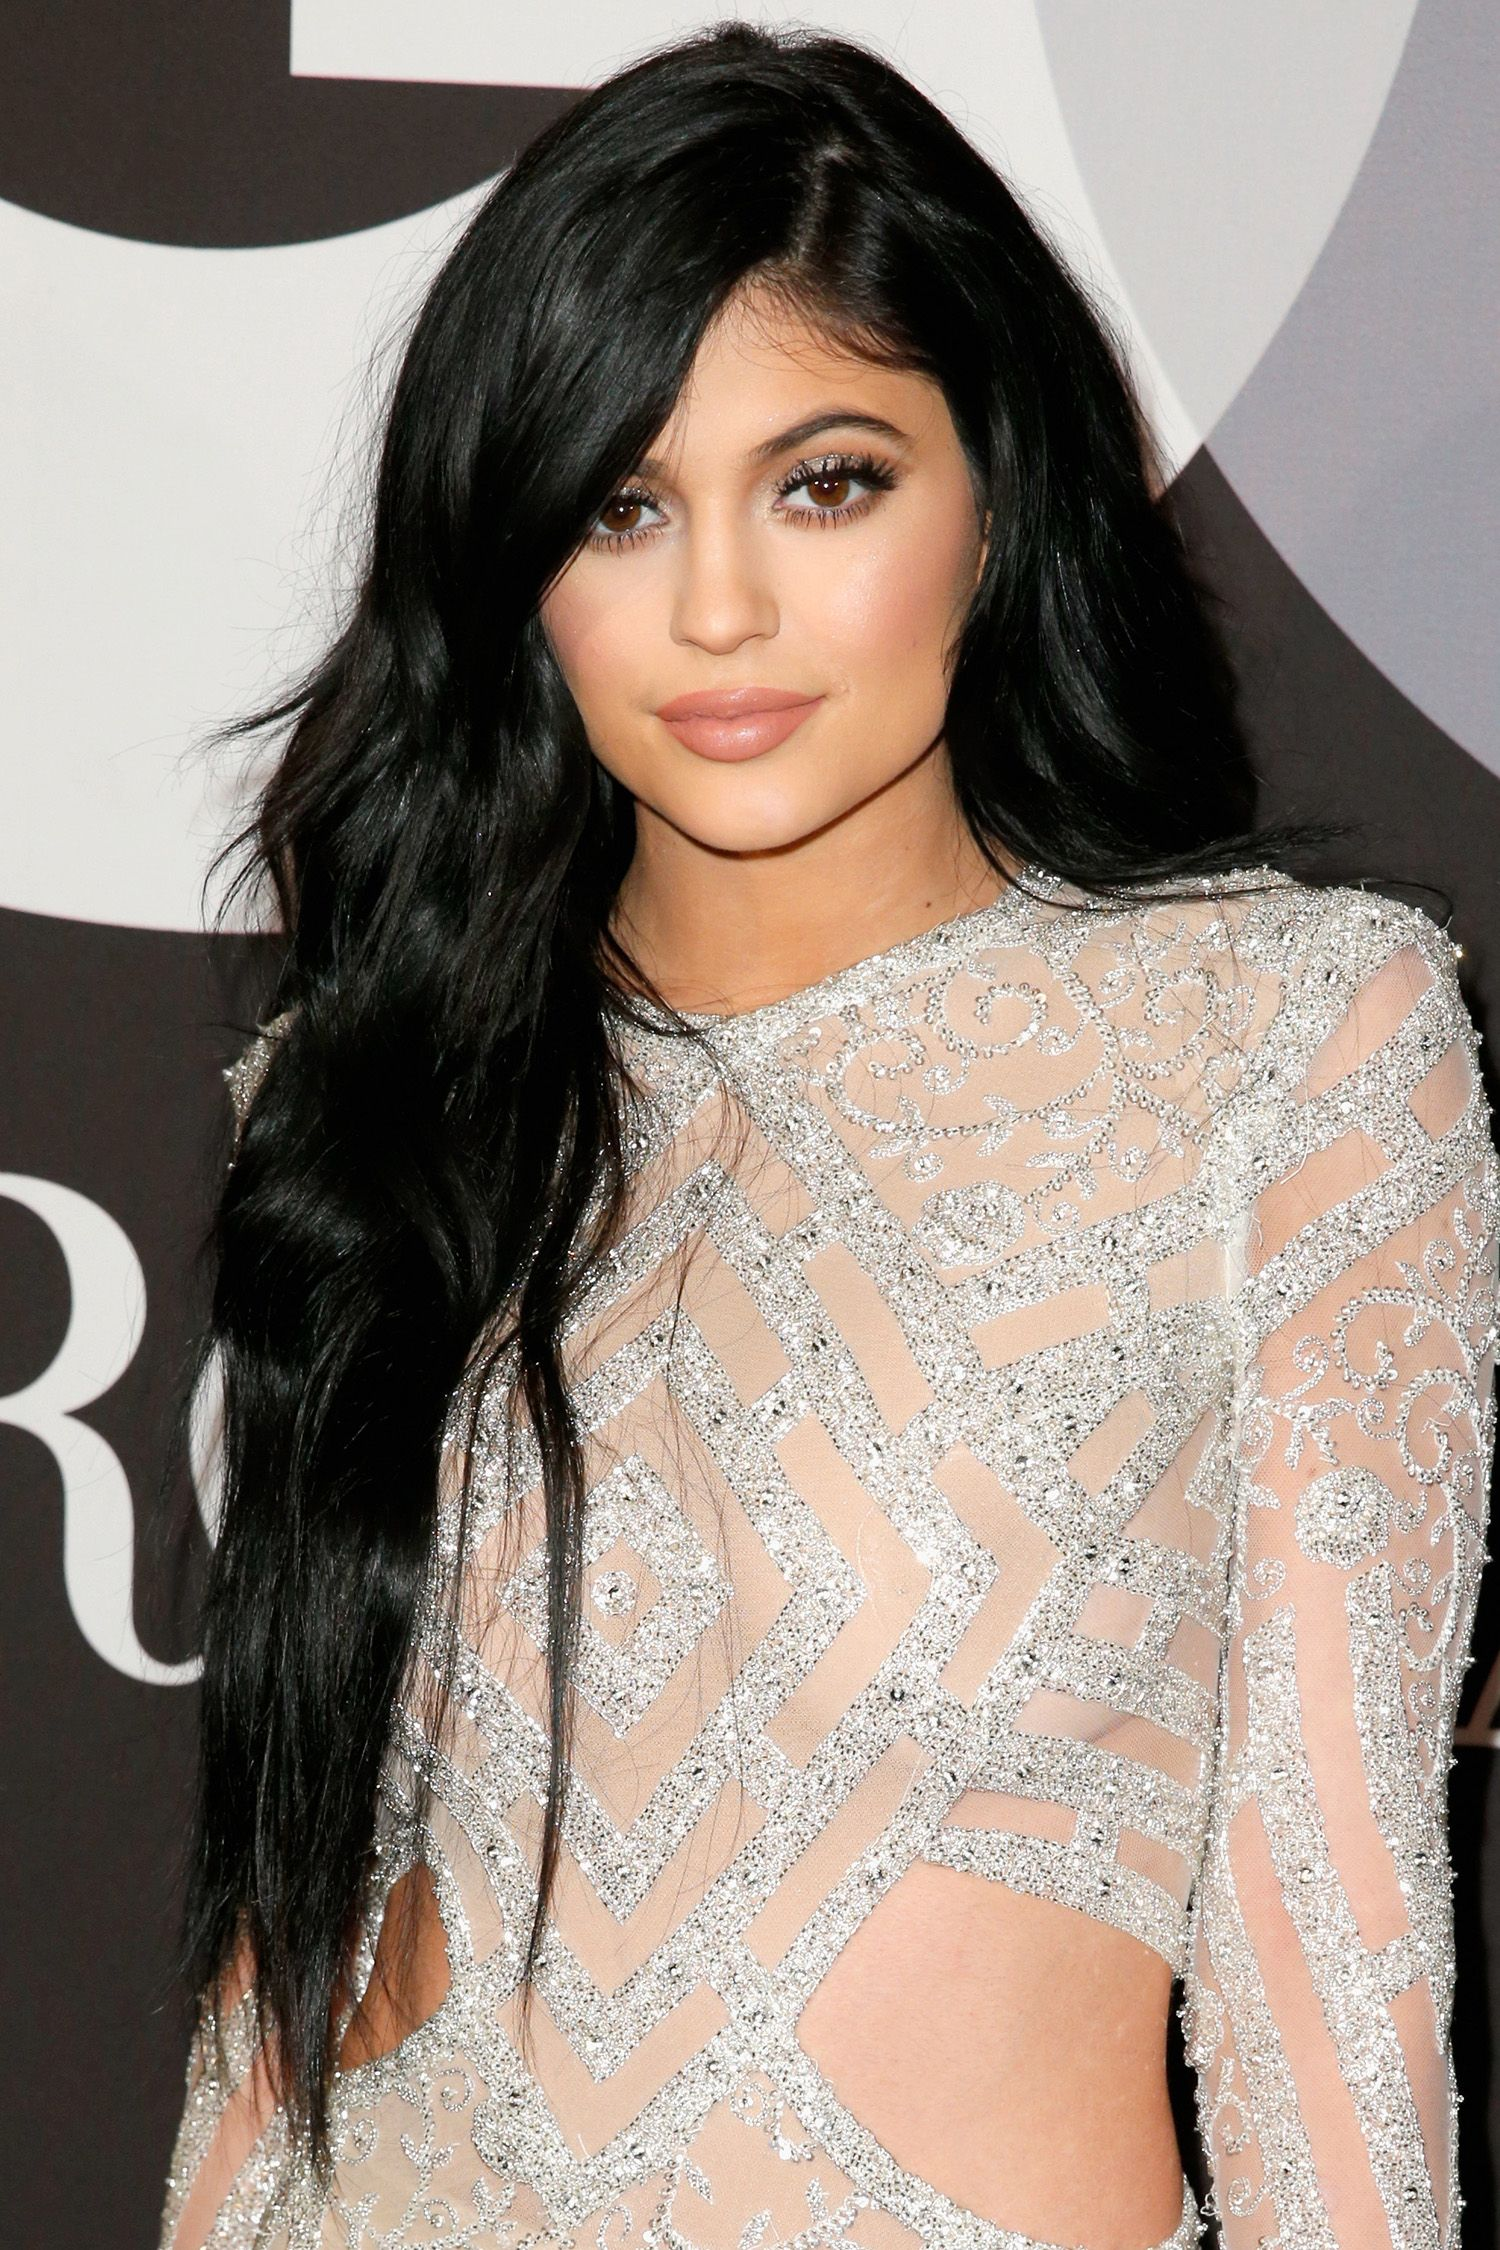 Kylie Jenner\u0027s Beauty Transformation Through the Years